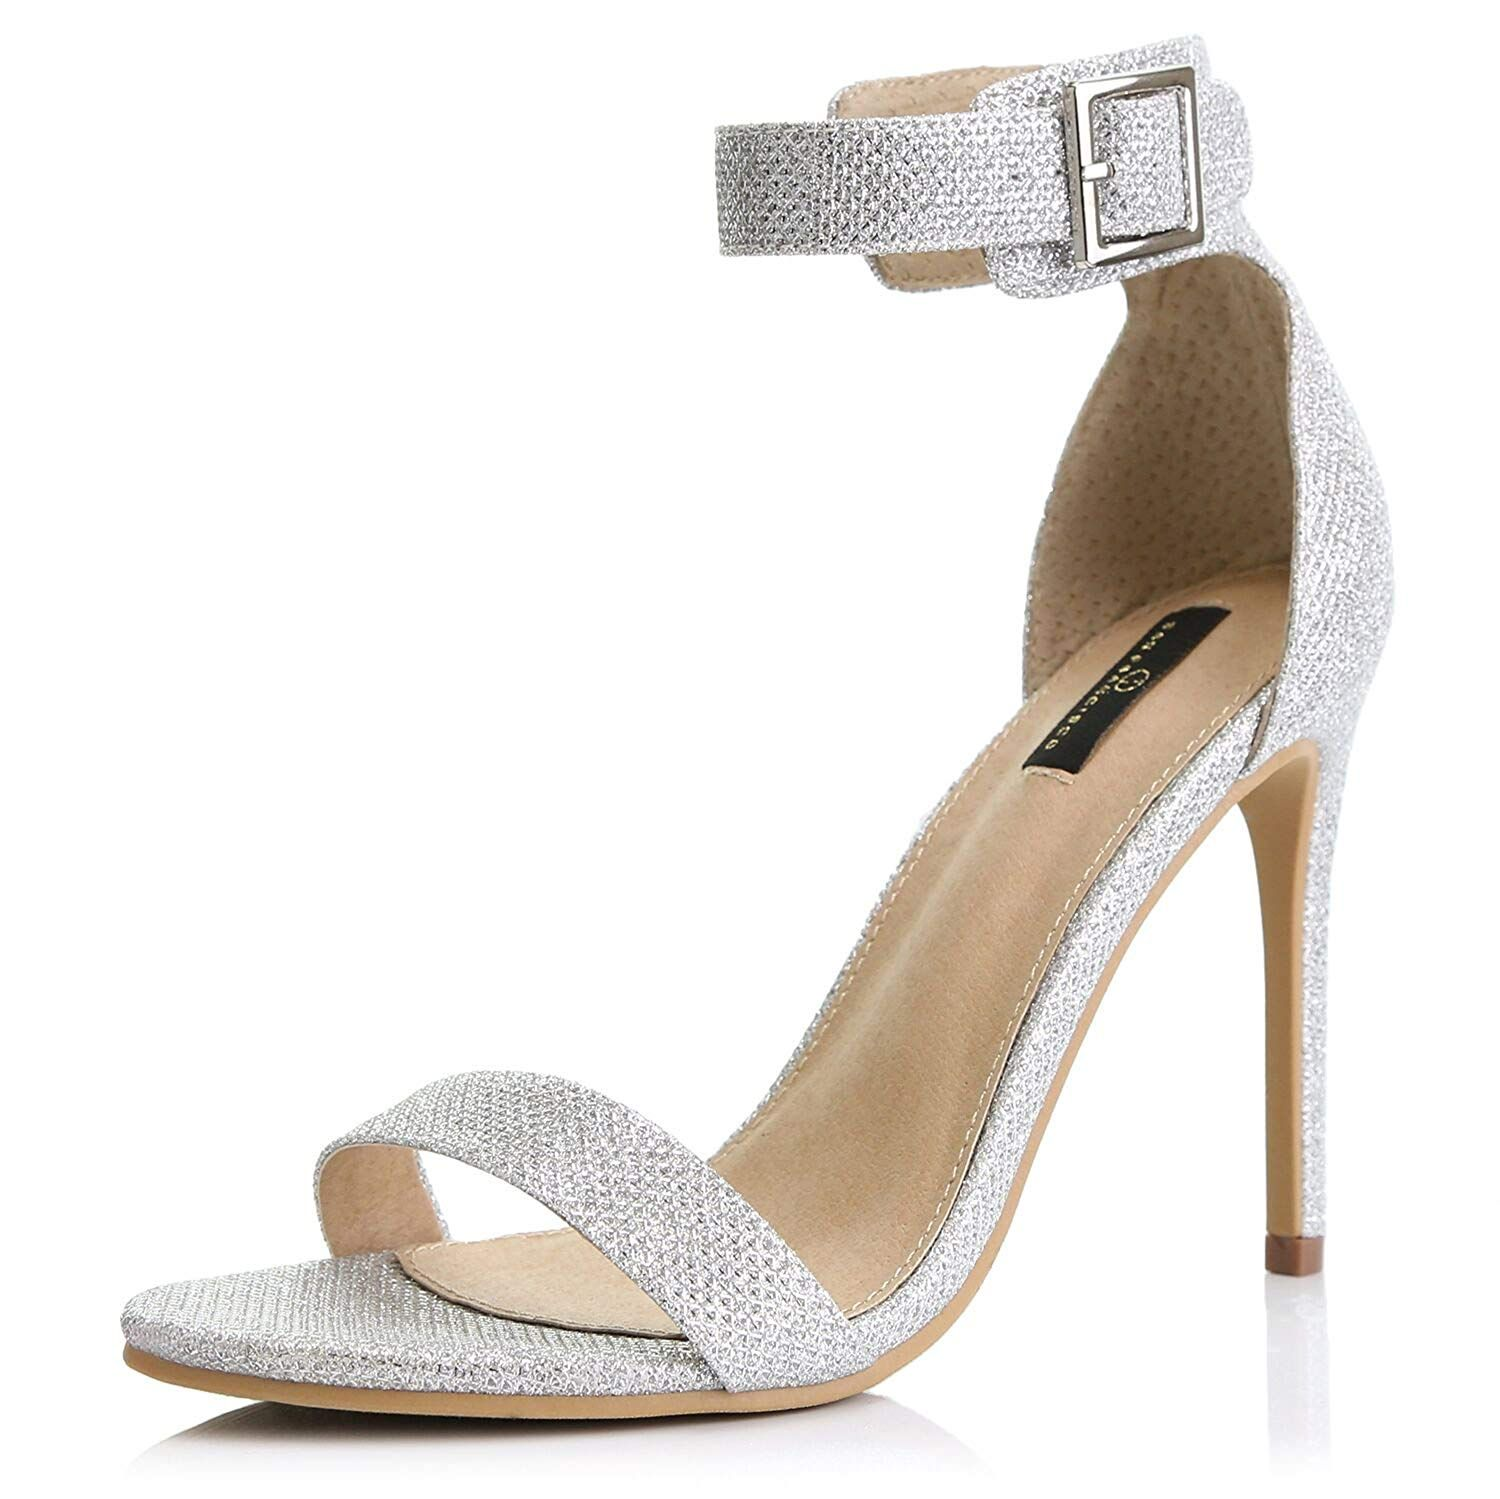 82726cd7c7f DailyShoes Women s Stiletto Heels Open Toe Ankle Buckle Strap Platform High  Heel Evening Party Dress Casual Sandal Shoes     We appreciate you for  seeing ...